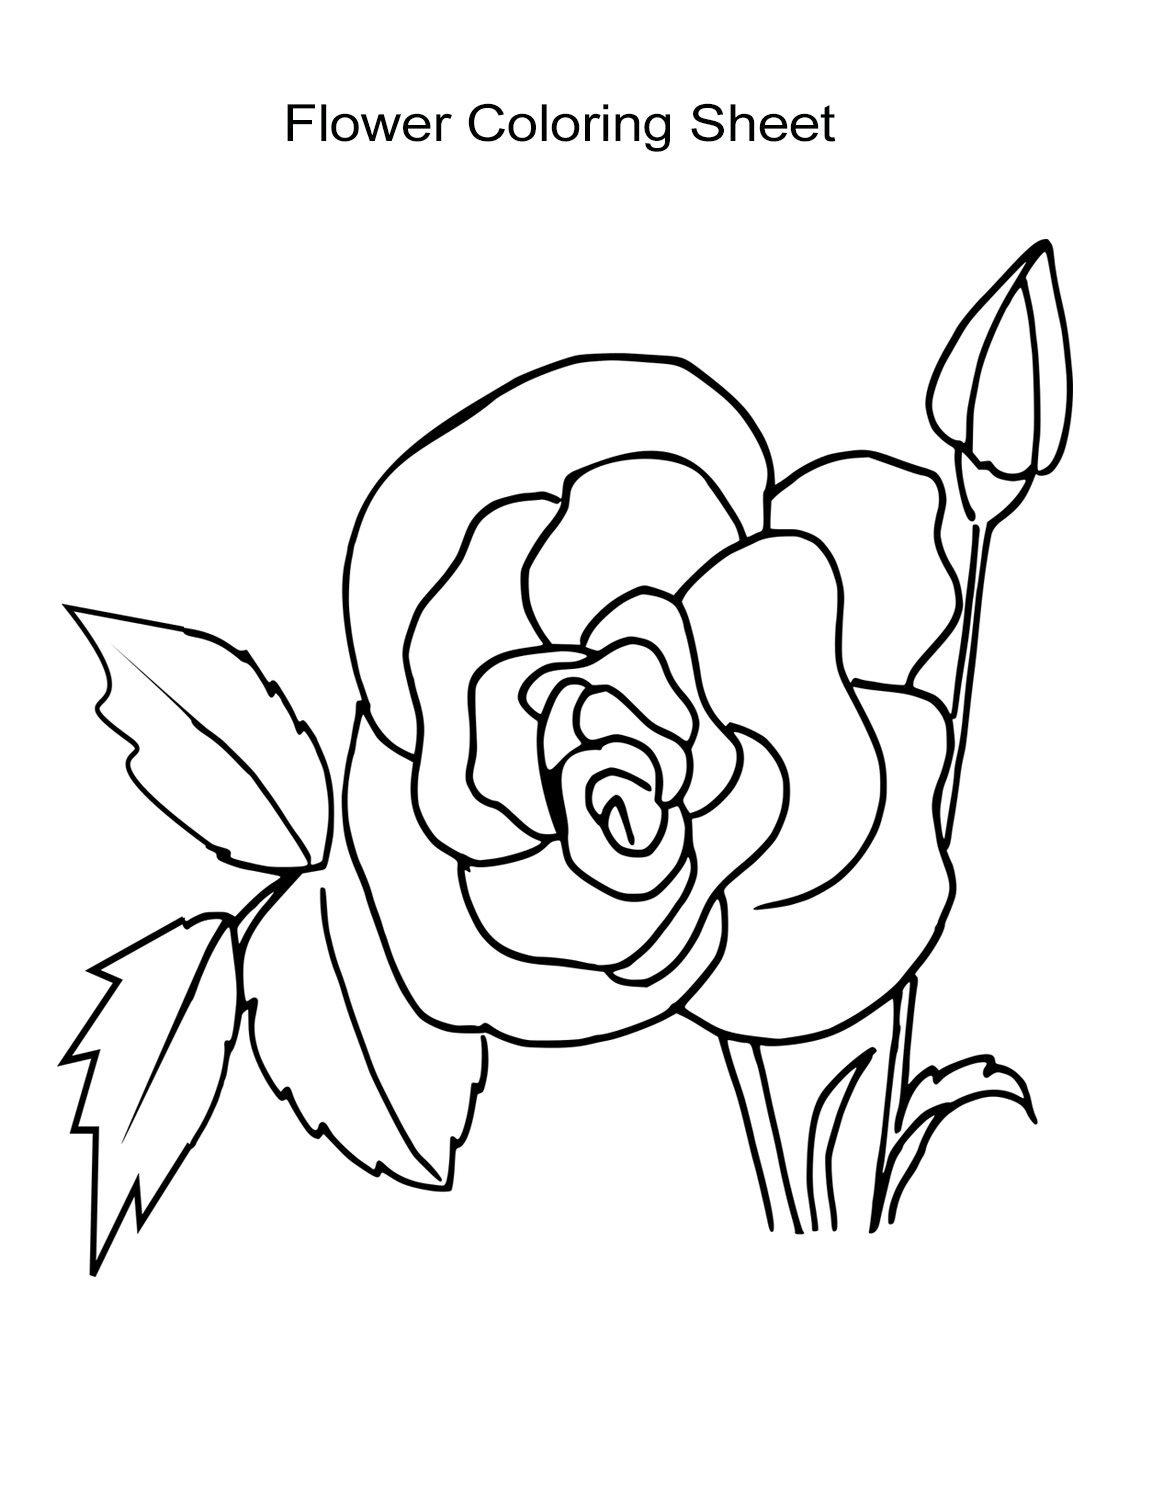 flower coloring 10 flower coloring sheets for girls and boys all esl flower coloring